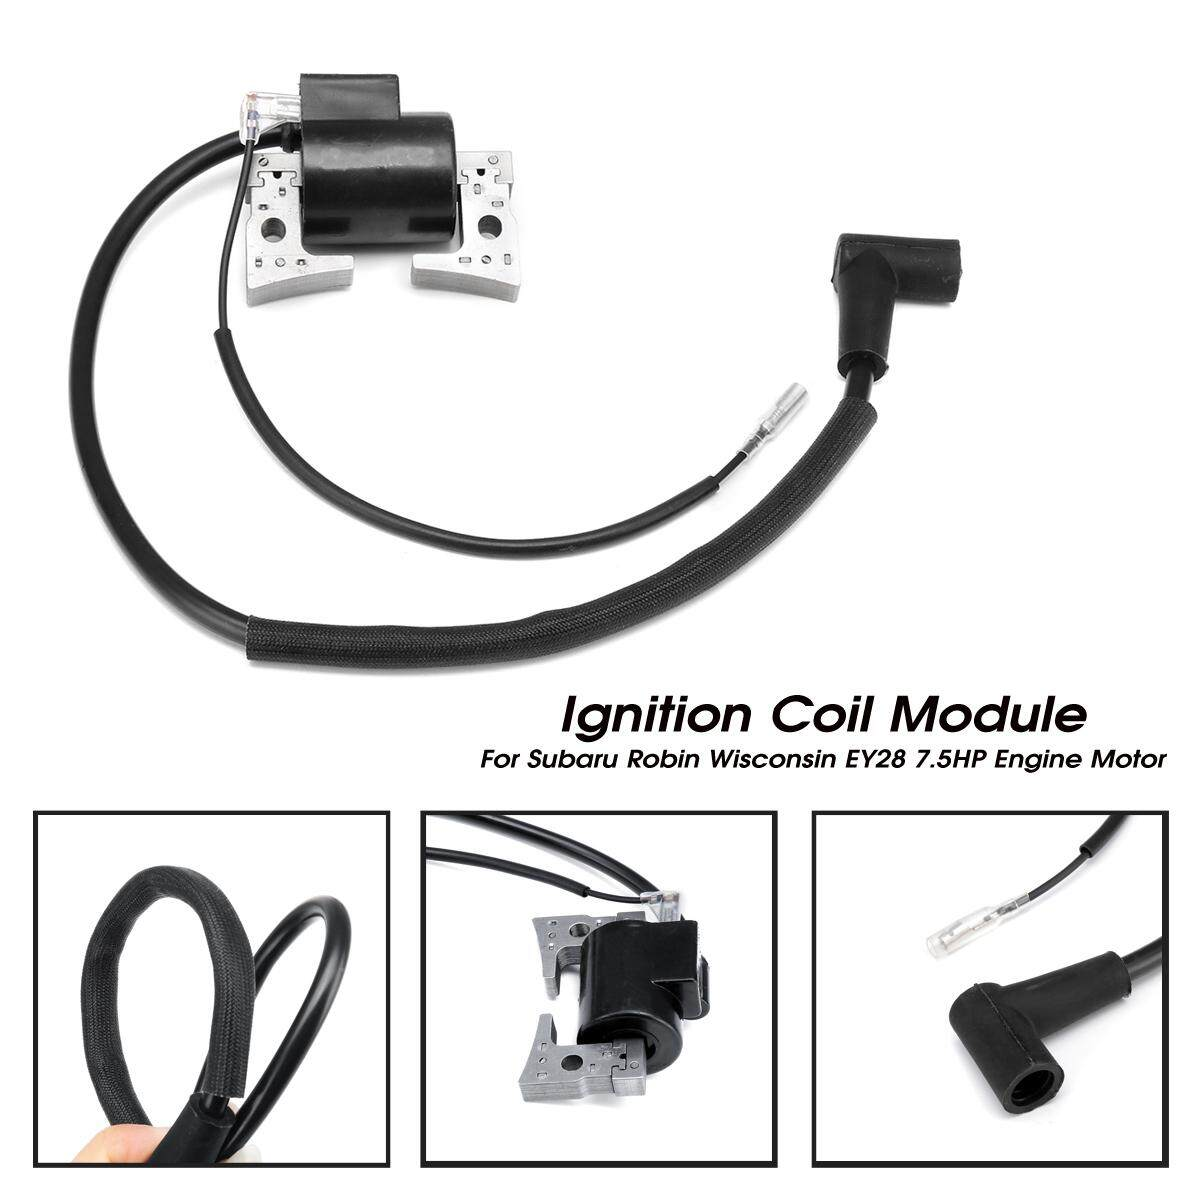 Ignition Coil Module For Subaru Robin Wisconsin EY28 7.5HP Engine Motor